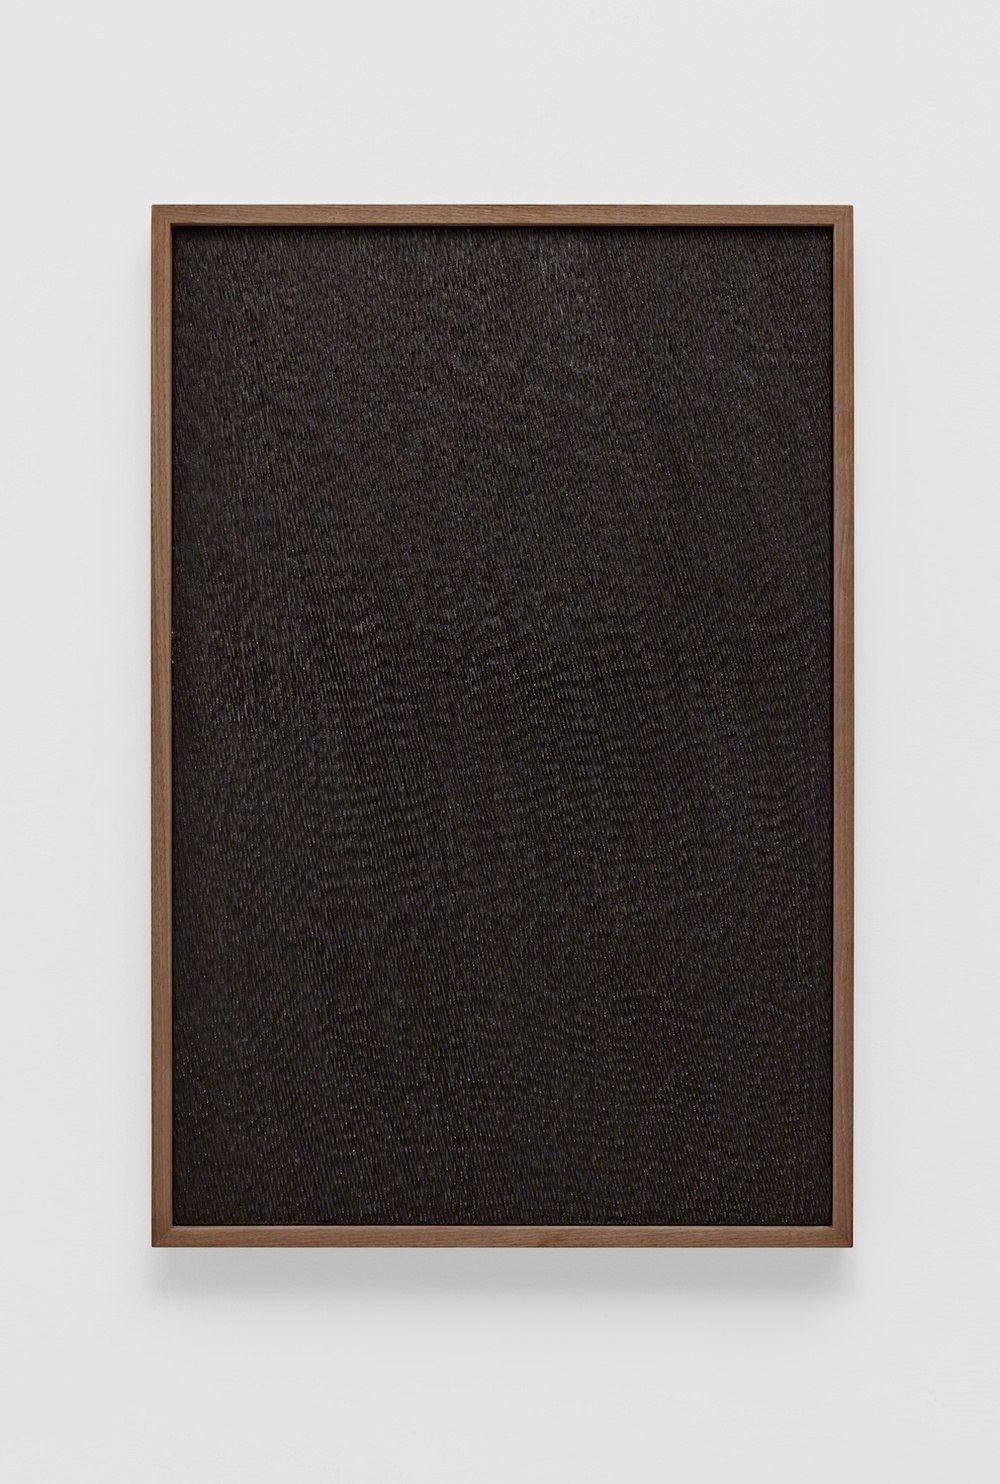 Anthony Pearson  Untitled (Etched Plaster)  2014 Pigmented hydrocal in walnut frame 30 ½h x 20 ½w x 2 ¼d in AP356